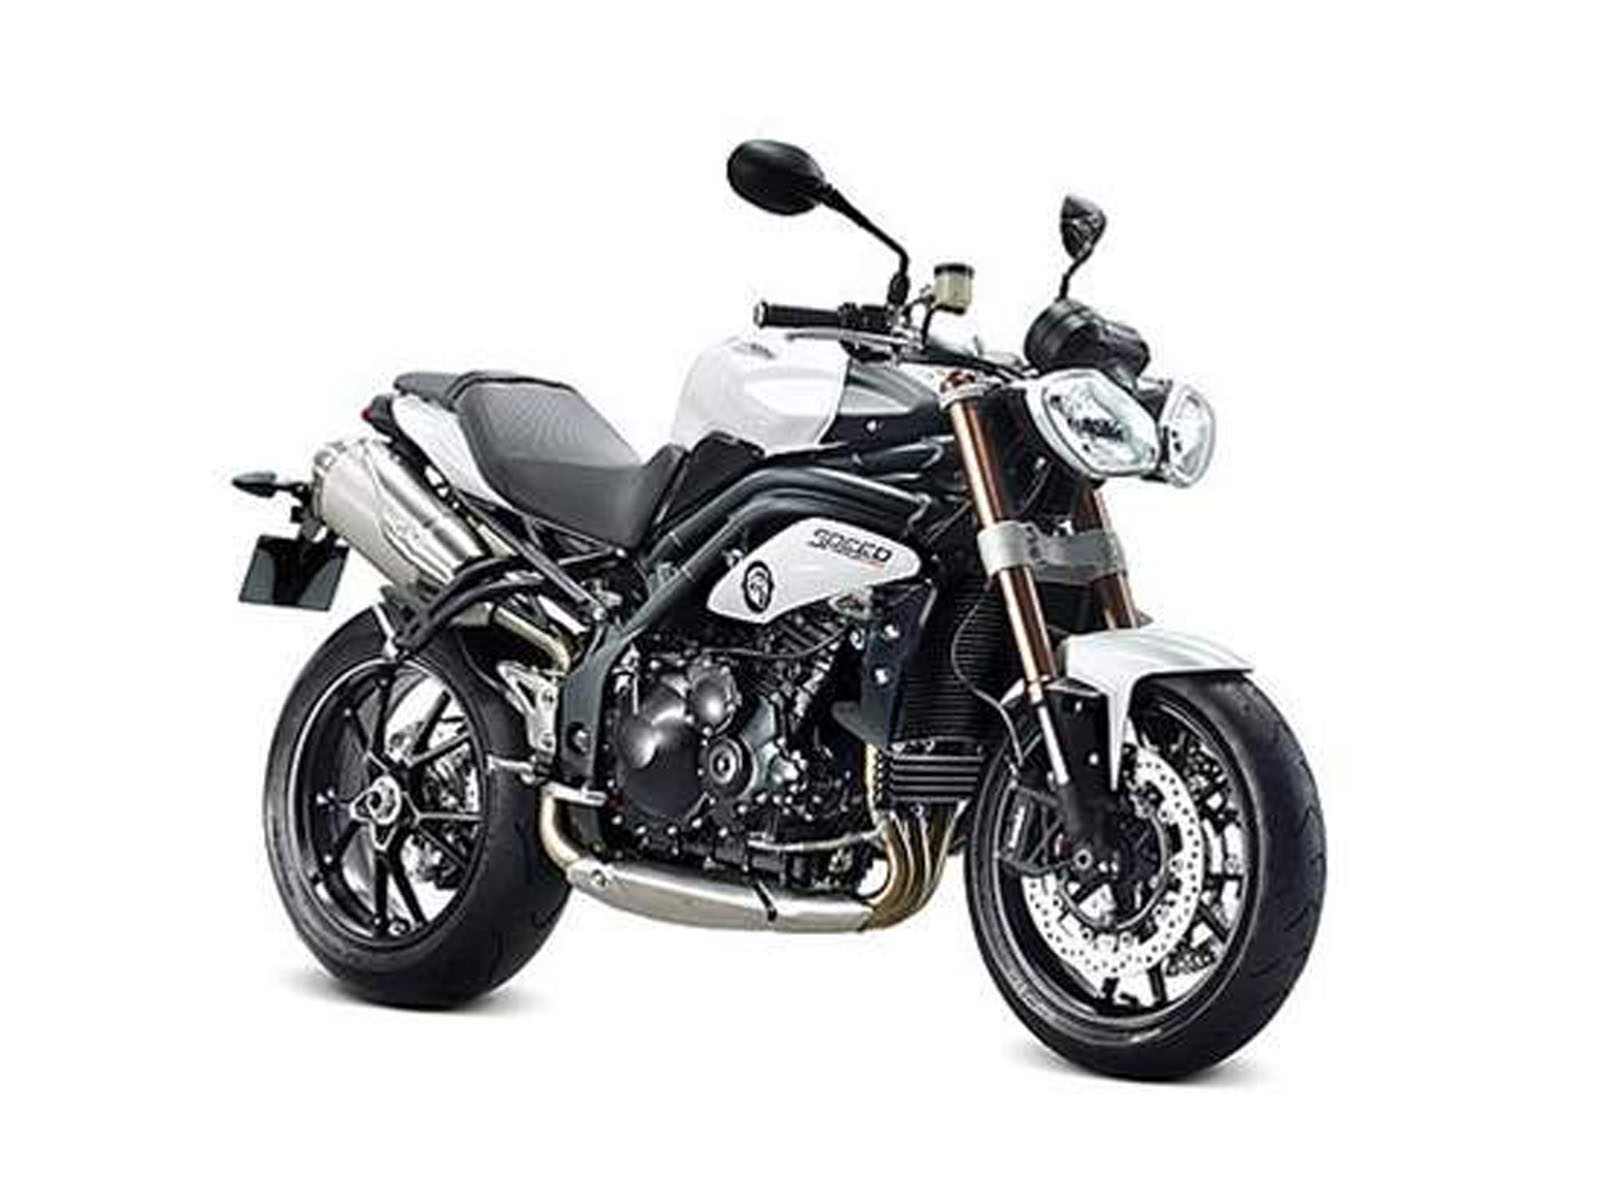 new motorcycle custom modification review and specs 2012 triumph speed triple 1050. Black Bedroom Furniture Sets. Home Design Ideas